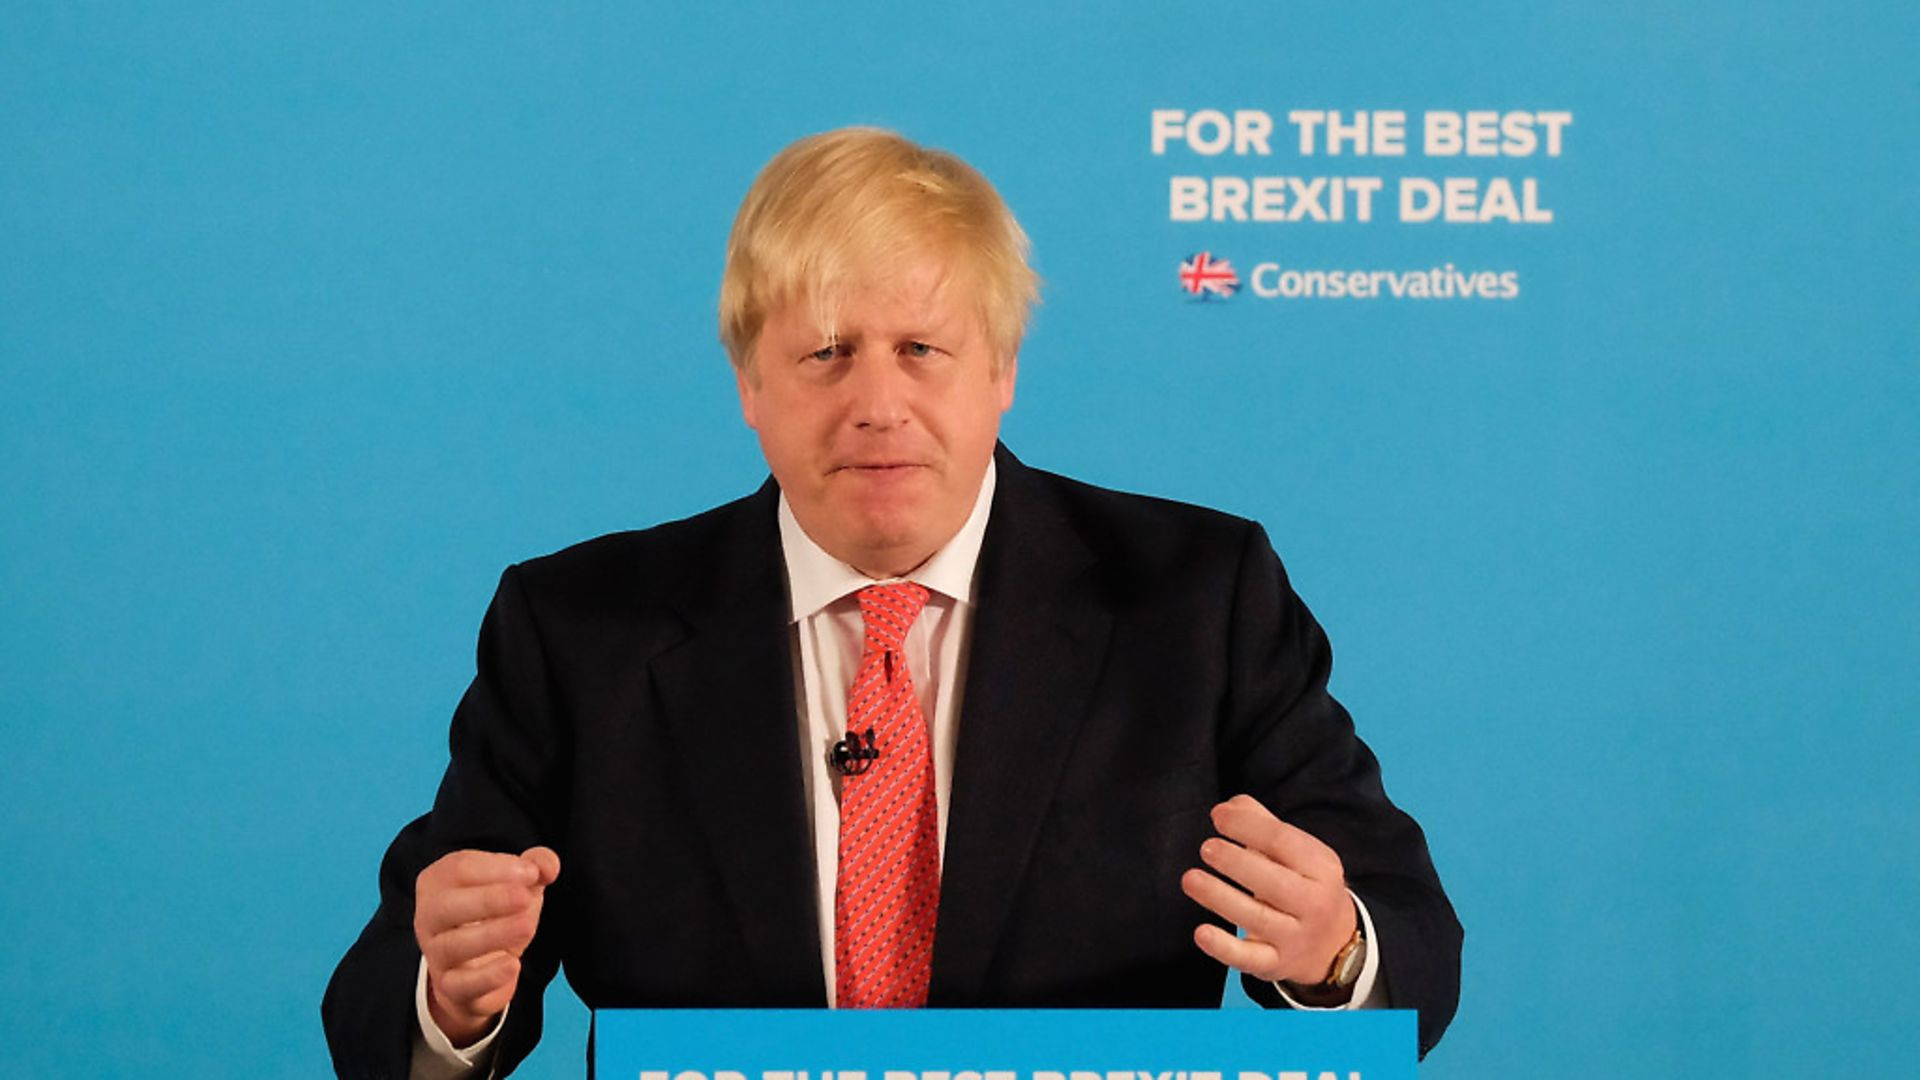 Boris Johnson ahead of the 2017 general election. (Photo by Ian Forsyth/Getty Images) - Credit: Getty Images